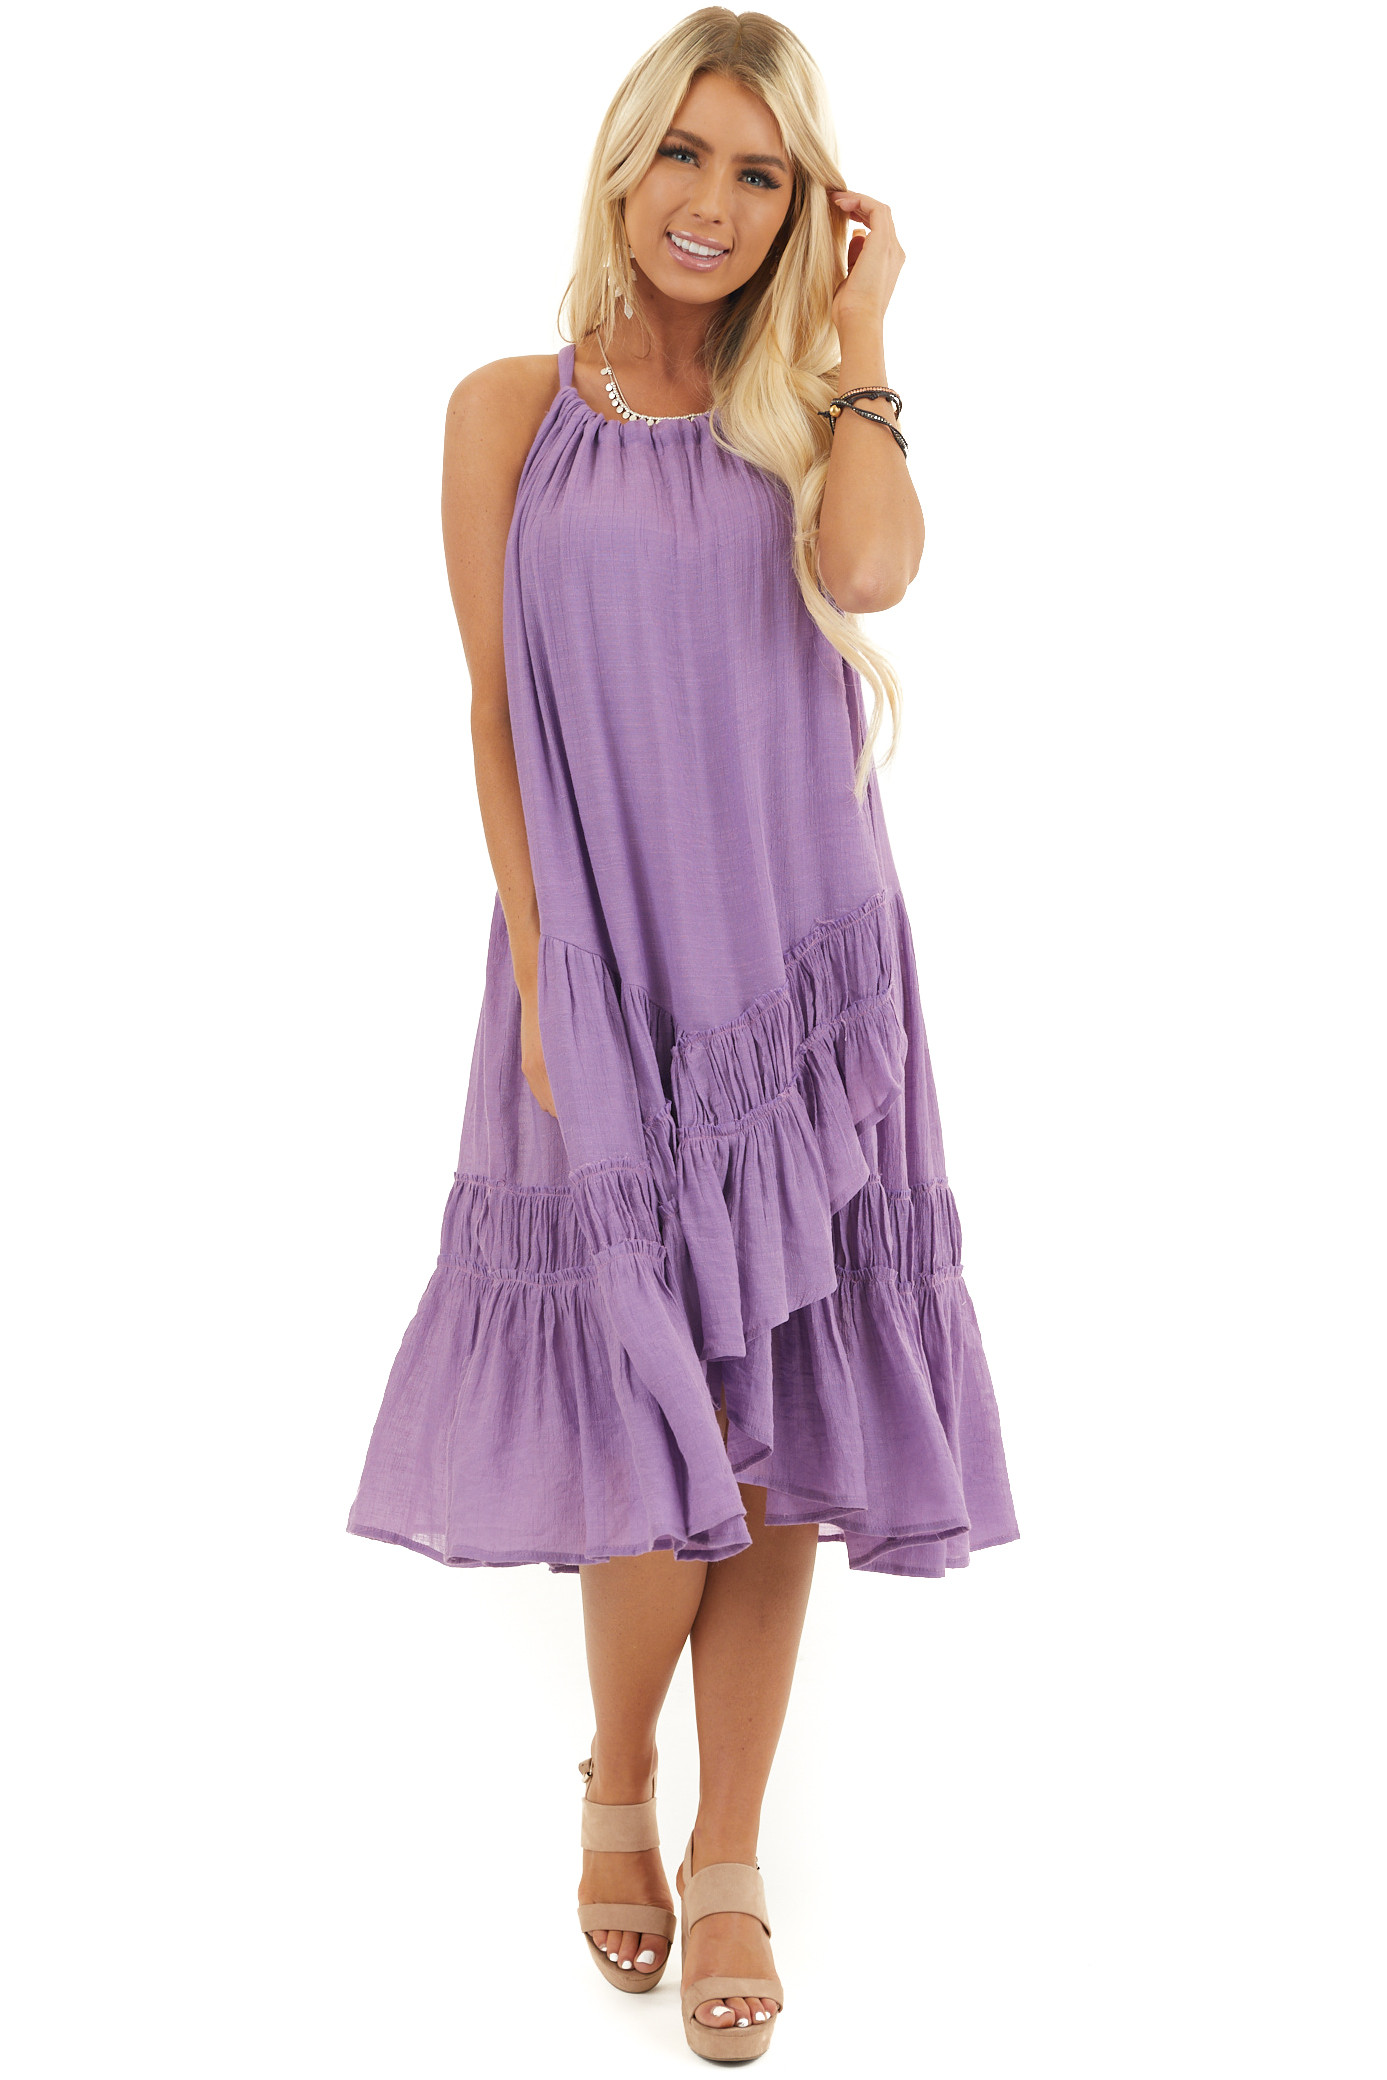 Lilac Sleeveless Halter Maxi Dress with Ruffle Details